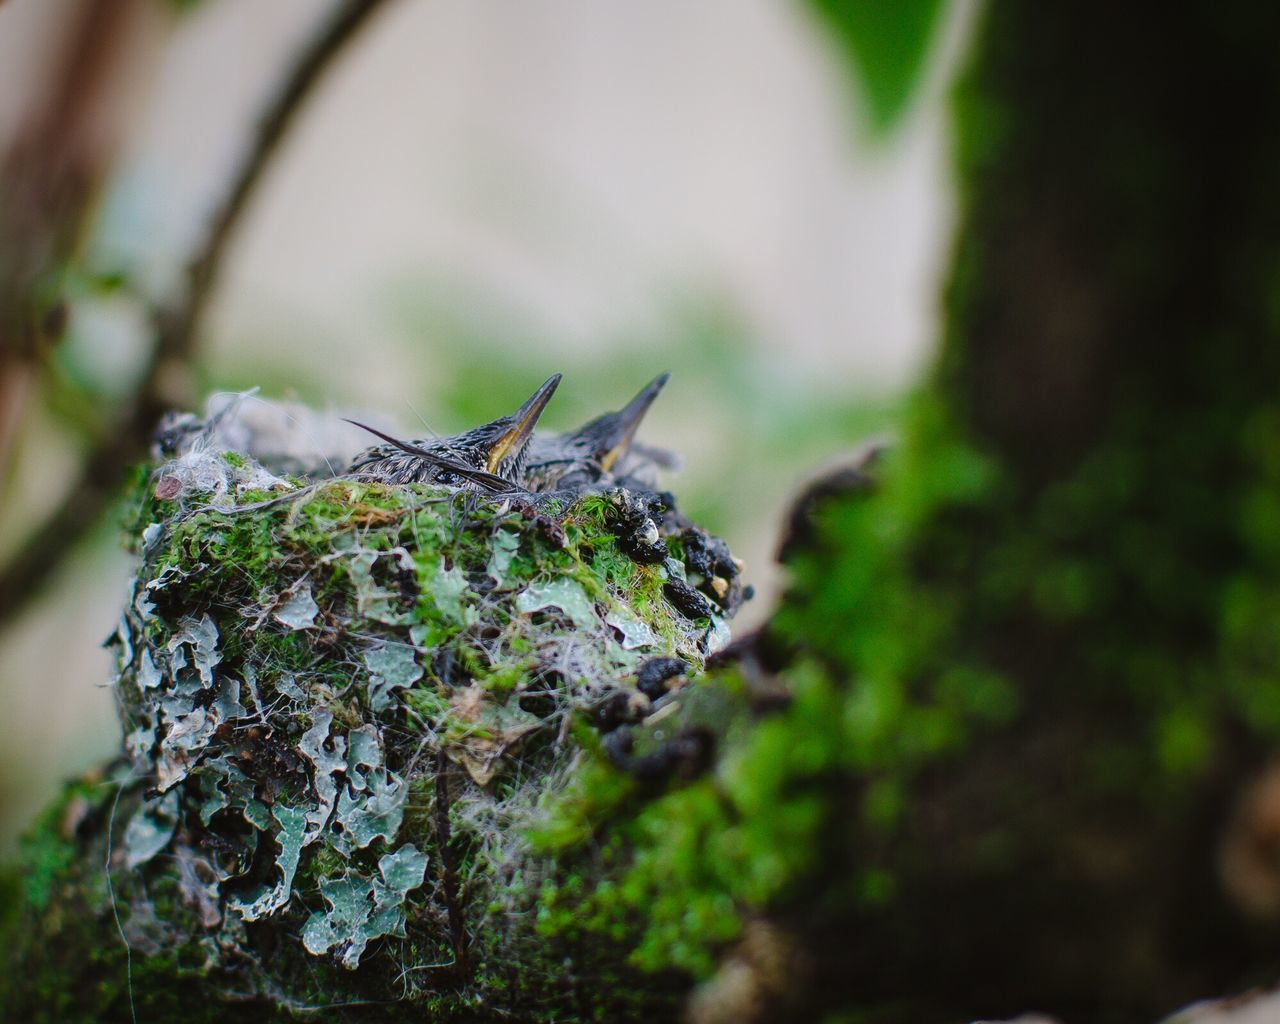 Hummingbird chicks. 18 days old. Animals In The Wild Animal Themes One Animal Nature Insect No People Outdoors Day Animal Wildlife Close-up Hummingbird Bird Photography